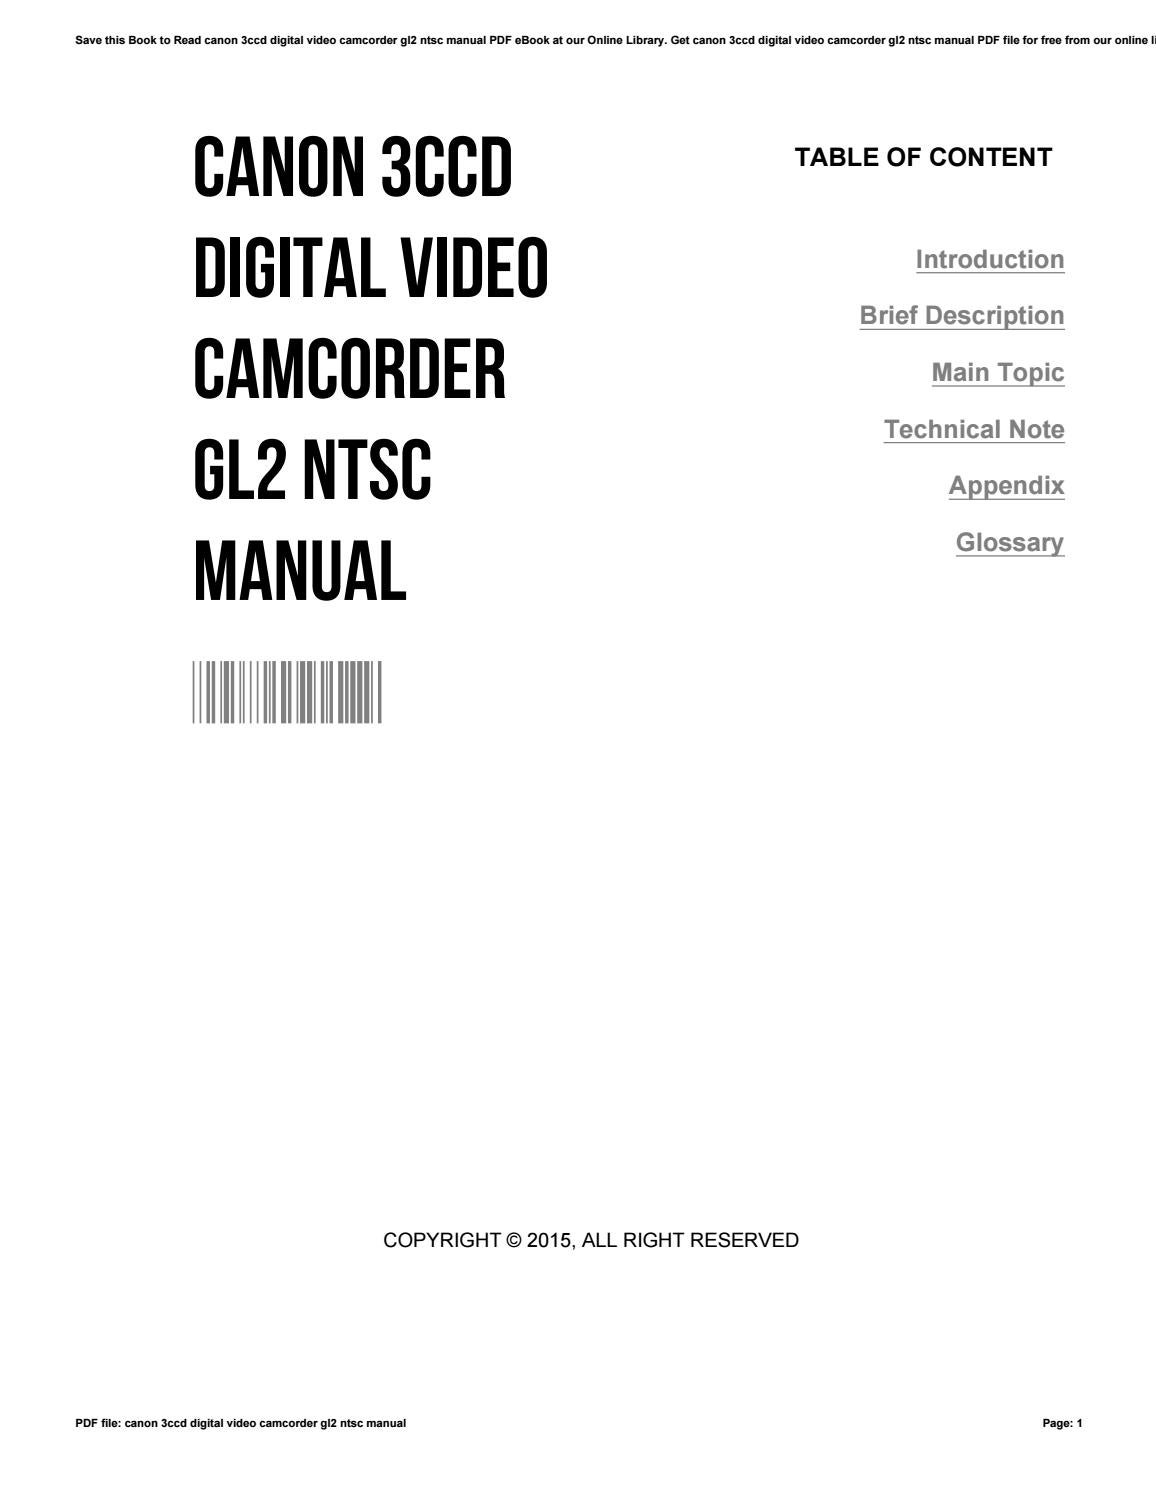 Canon 3ccd digital video camcorder gl2 ntsc manual by